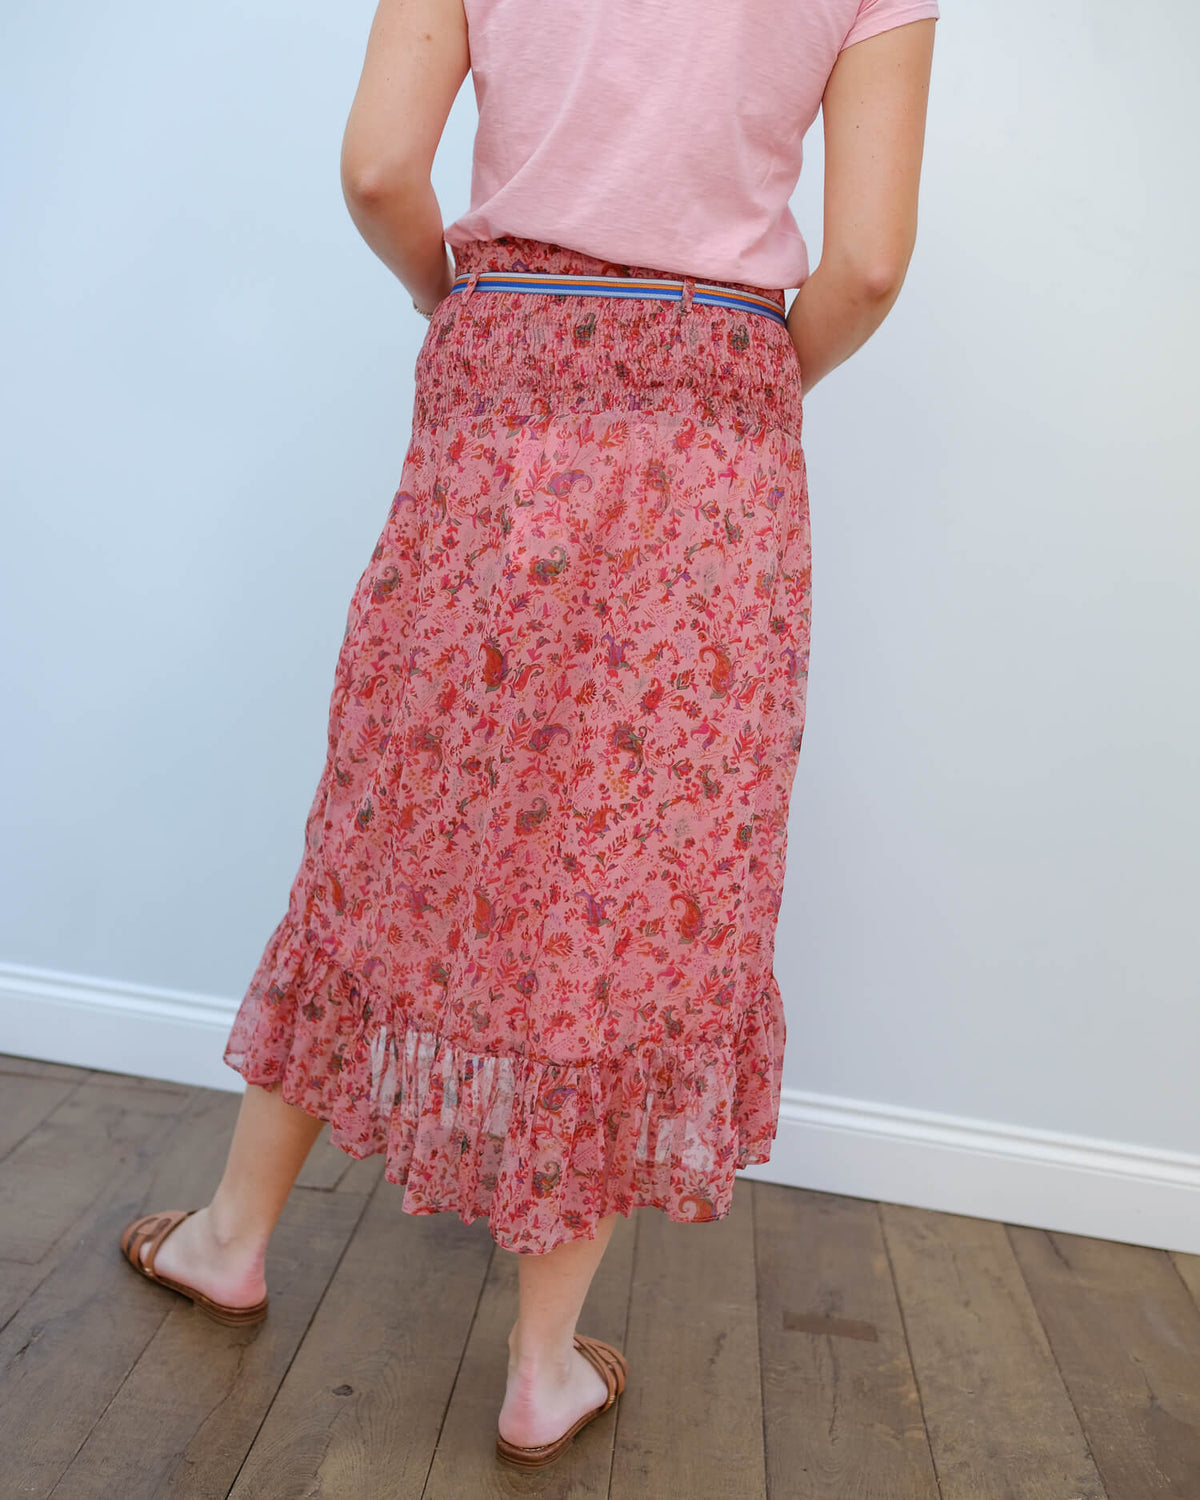 MOLIIN Jessika skirt in orchid rose